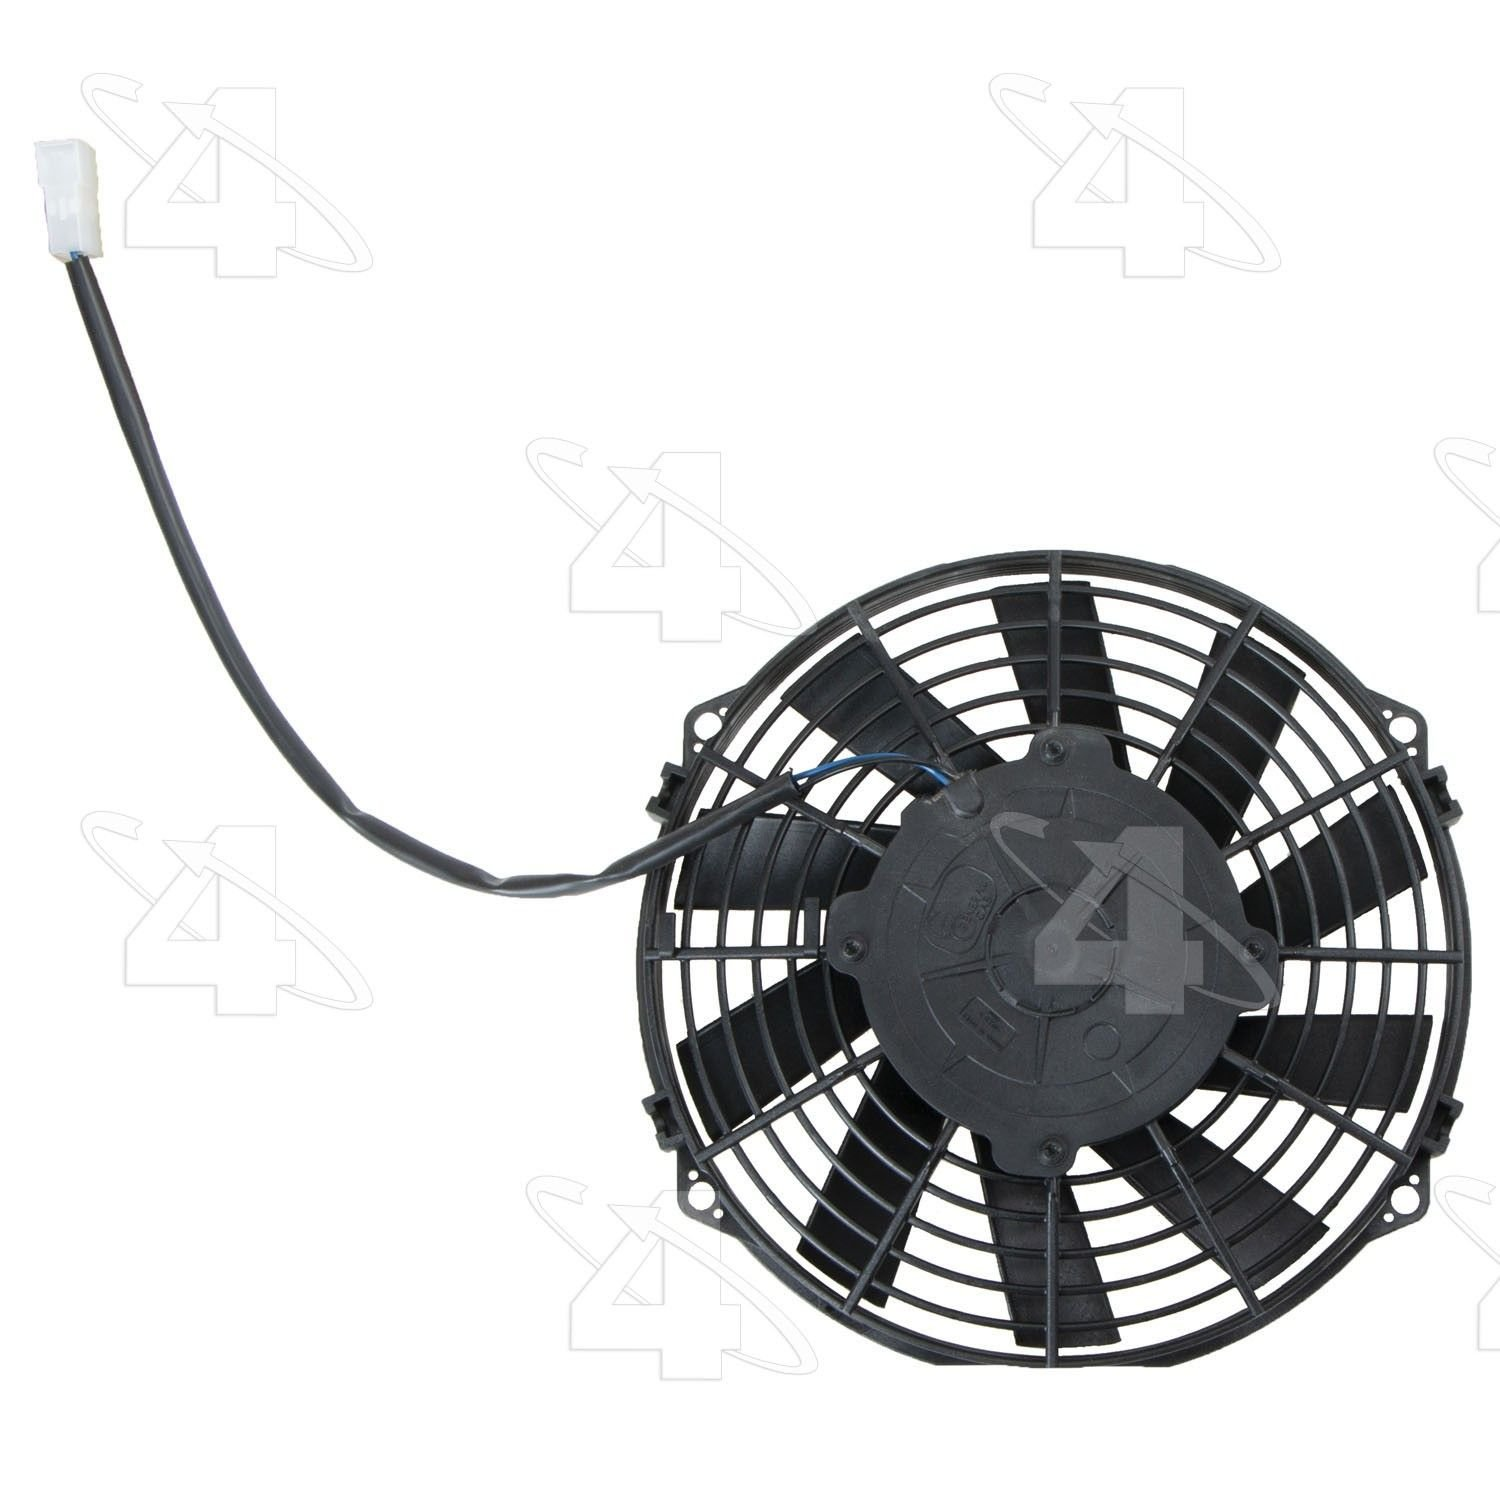 Jeep Commander Engine Cooling Fan Replacement (Four Seasons, Hayden